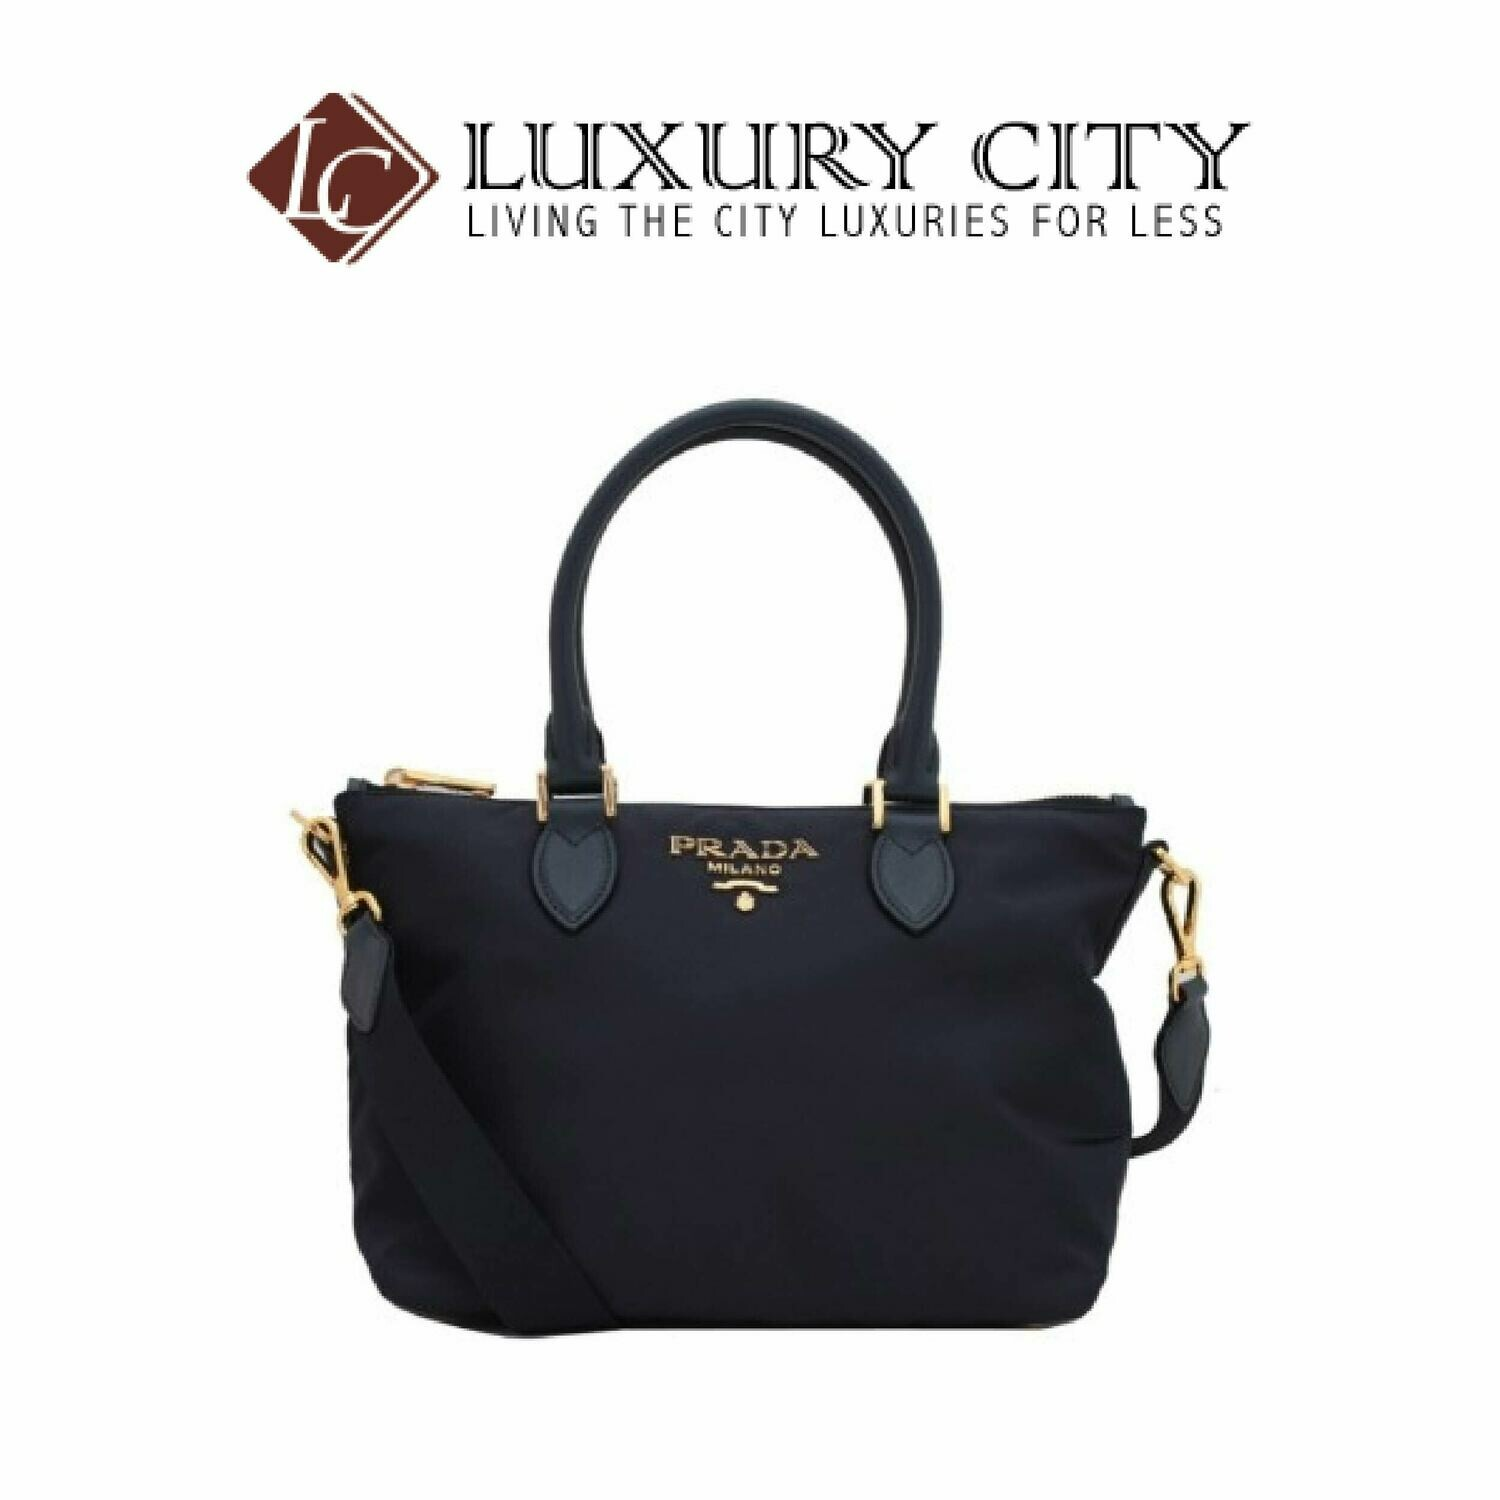 [Luxury City] Prada Tessuto Nylon & Saffiano Leather Satchel Bag Dark Blue Prada-1BA275